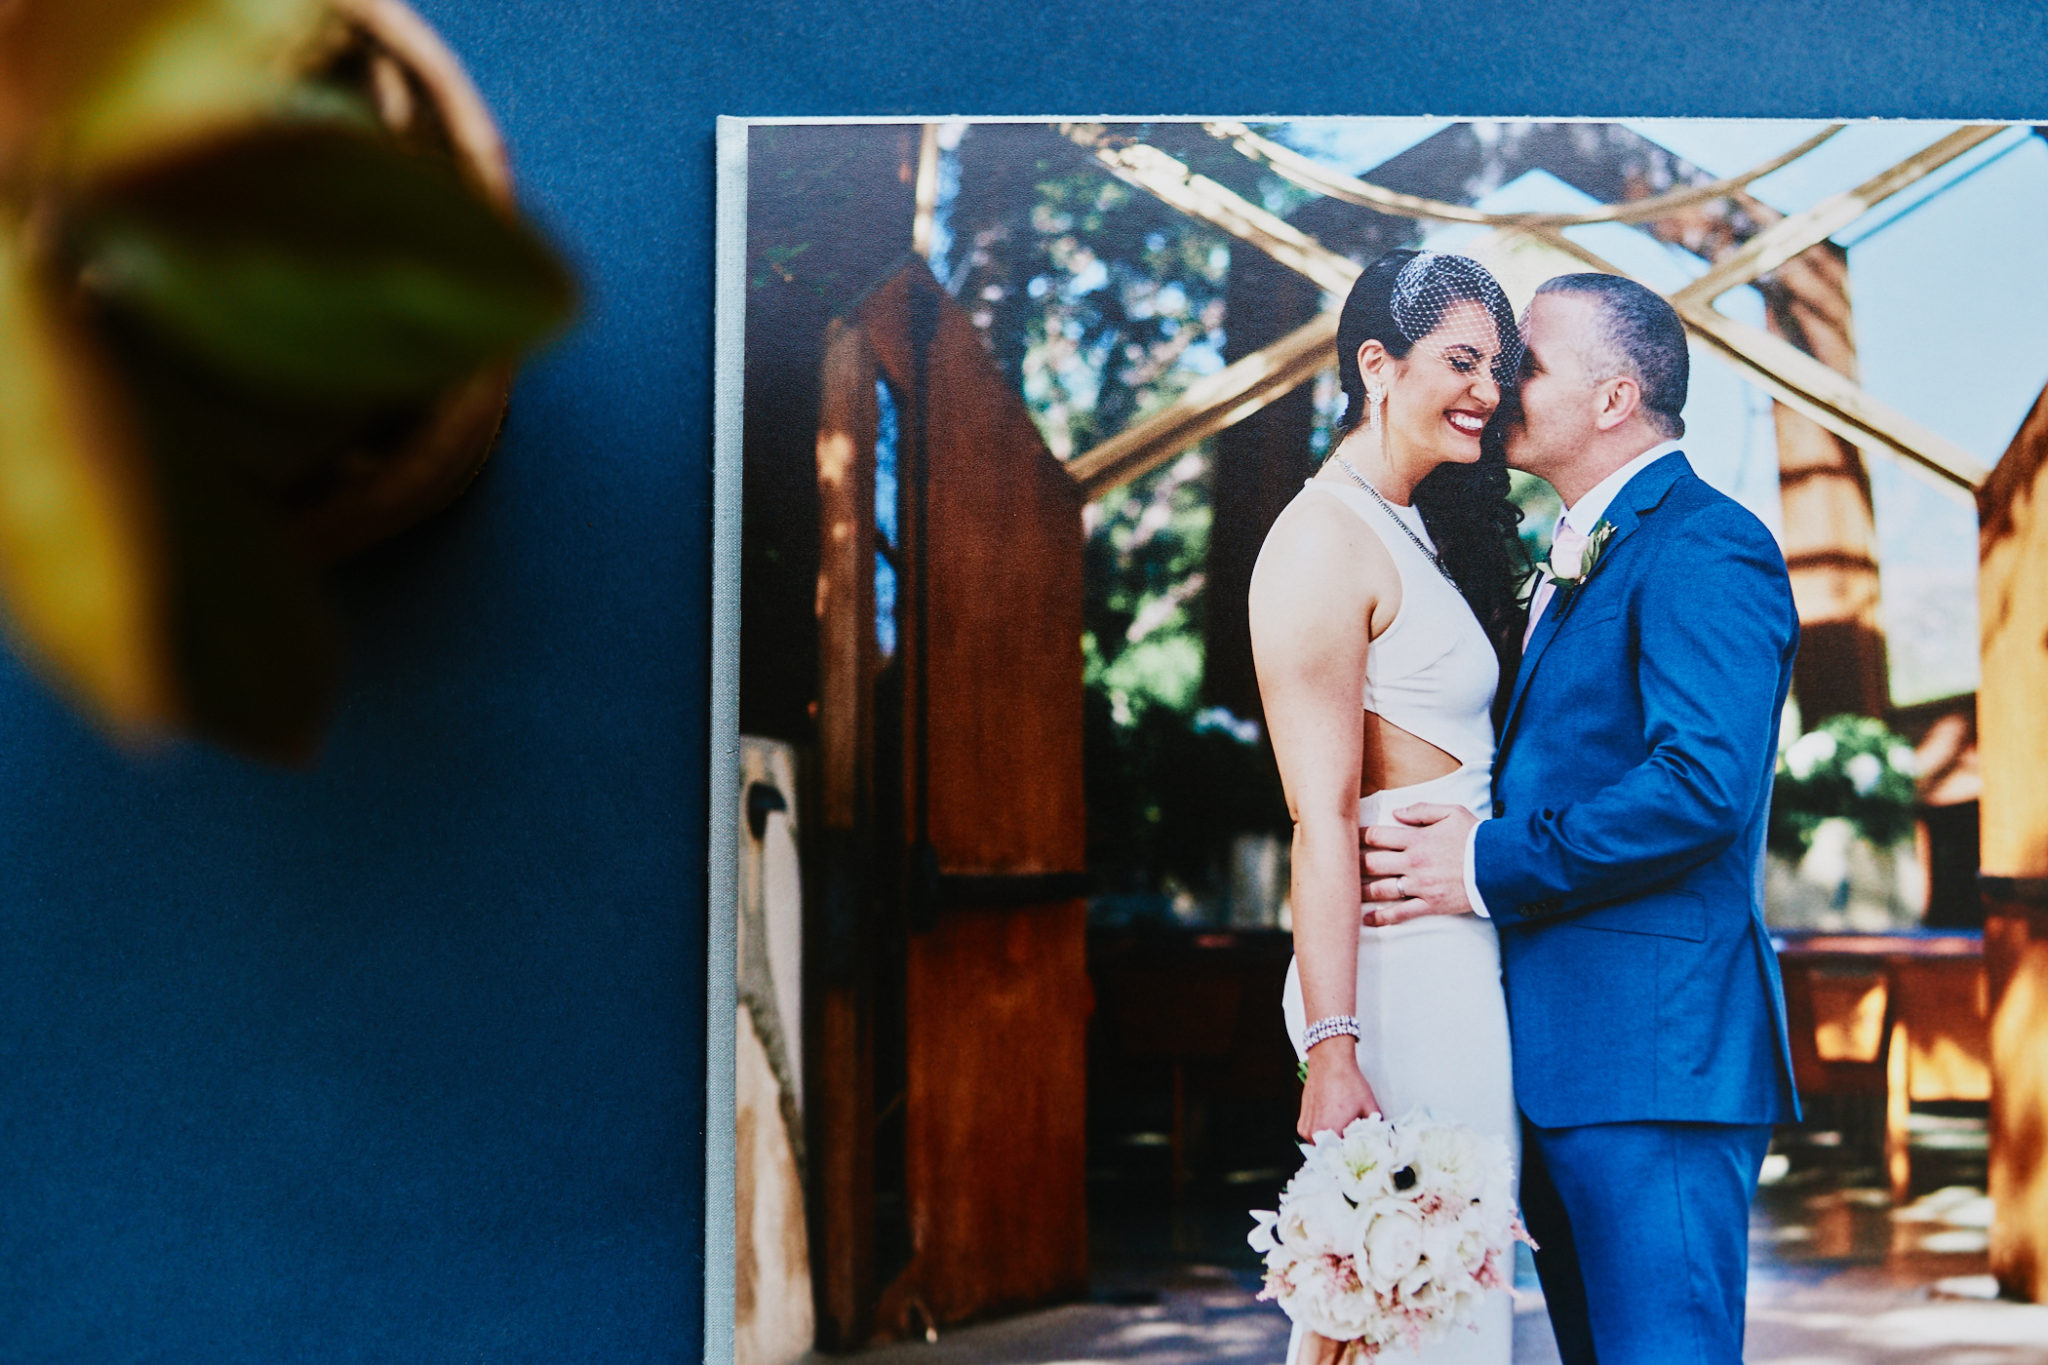 "15"" x 10"" silk wedding album"